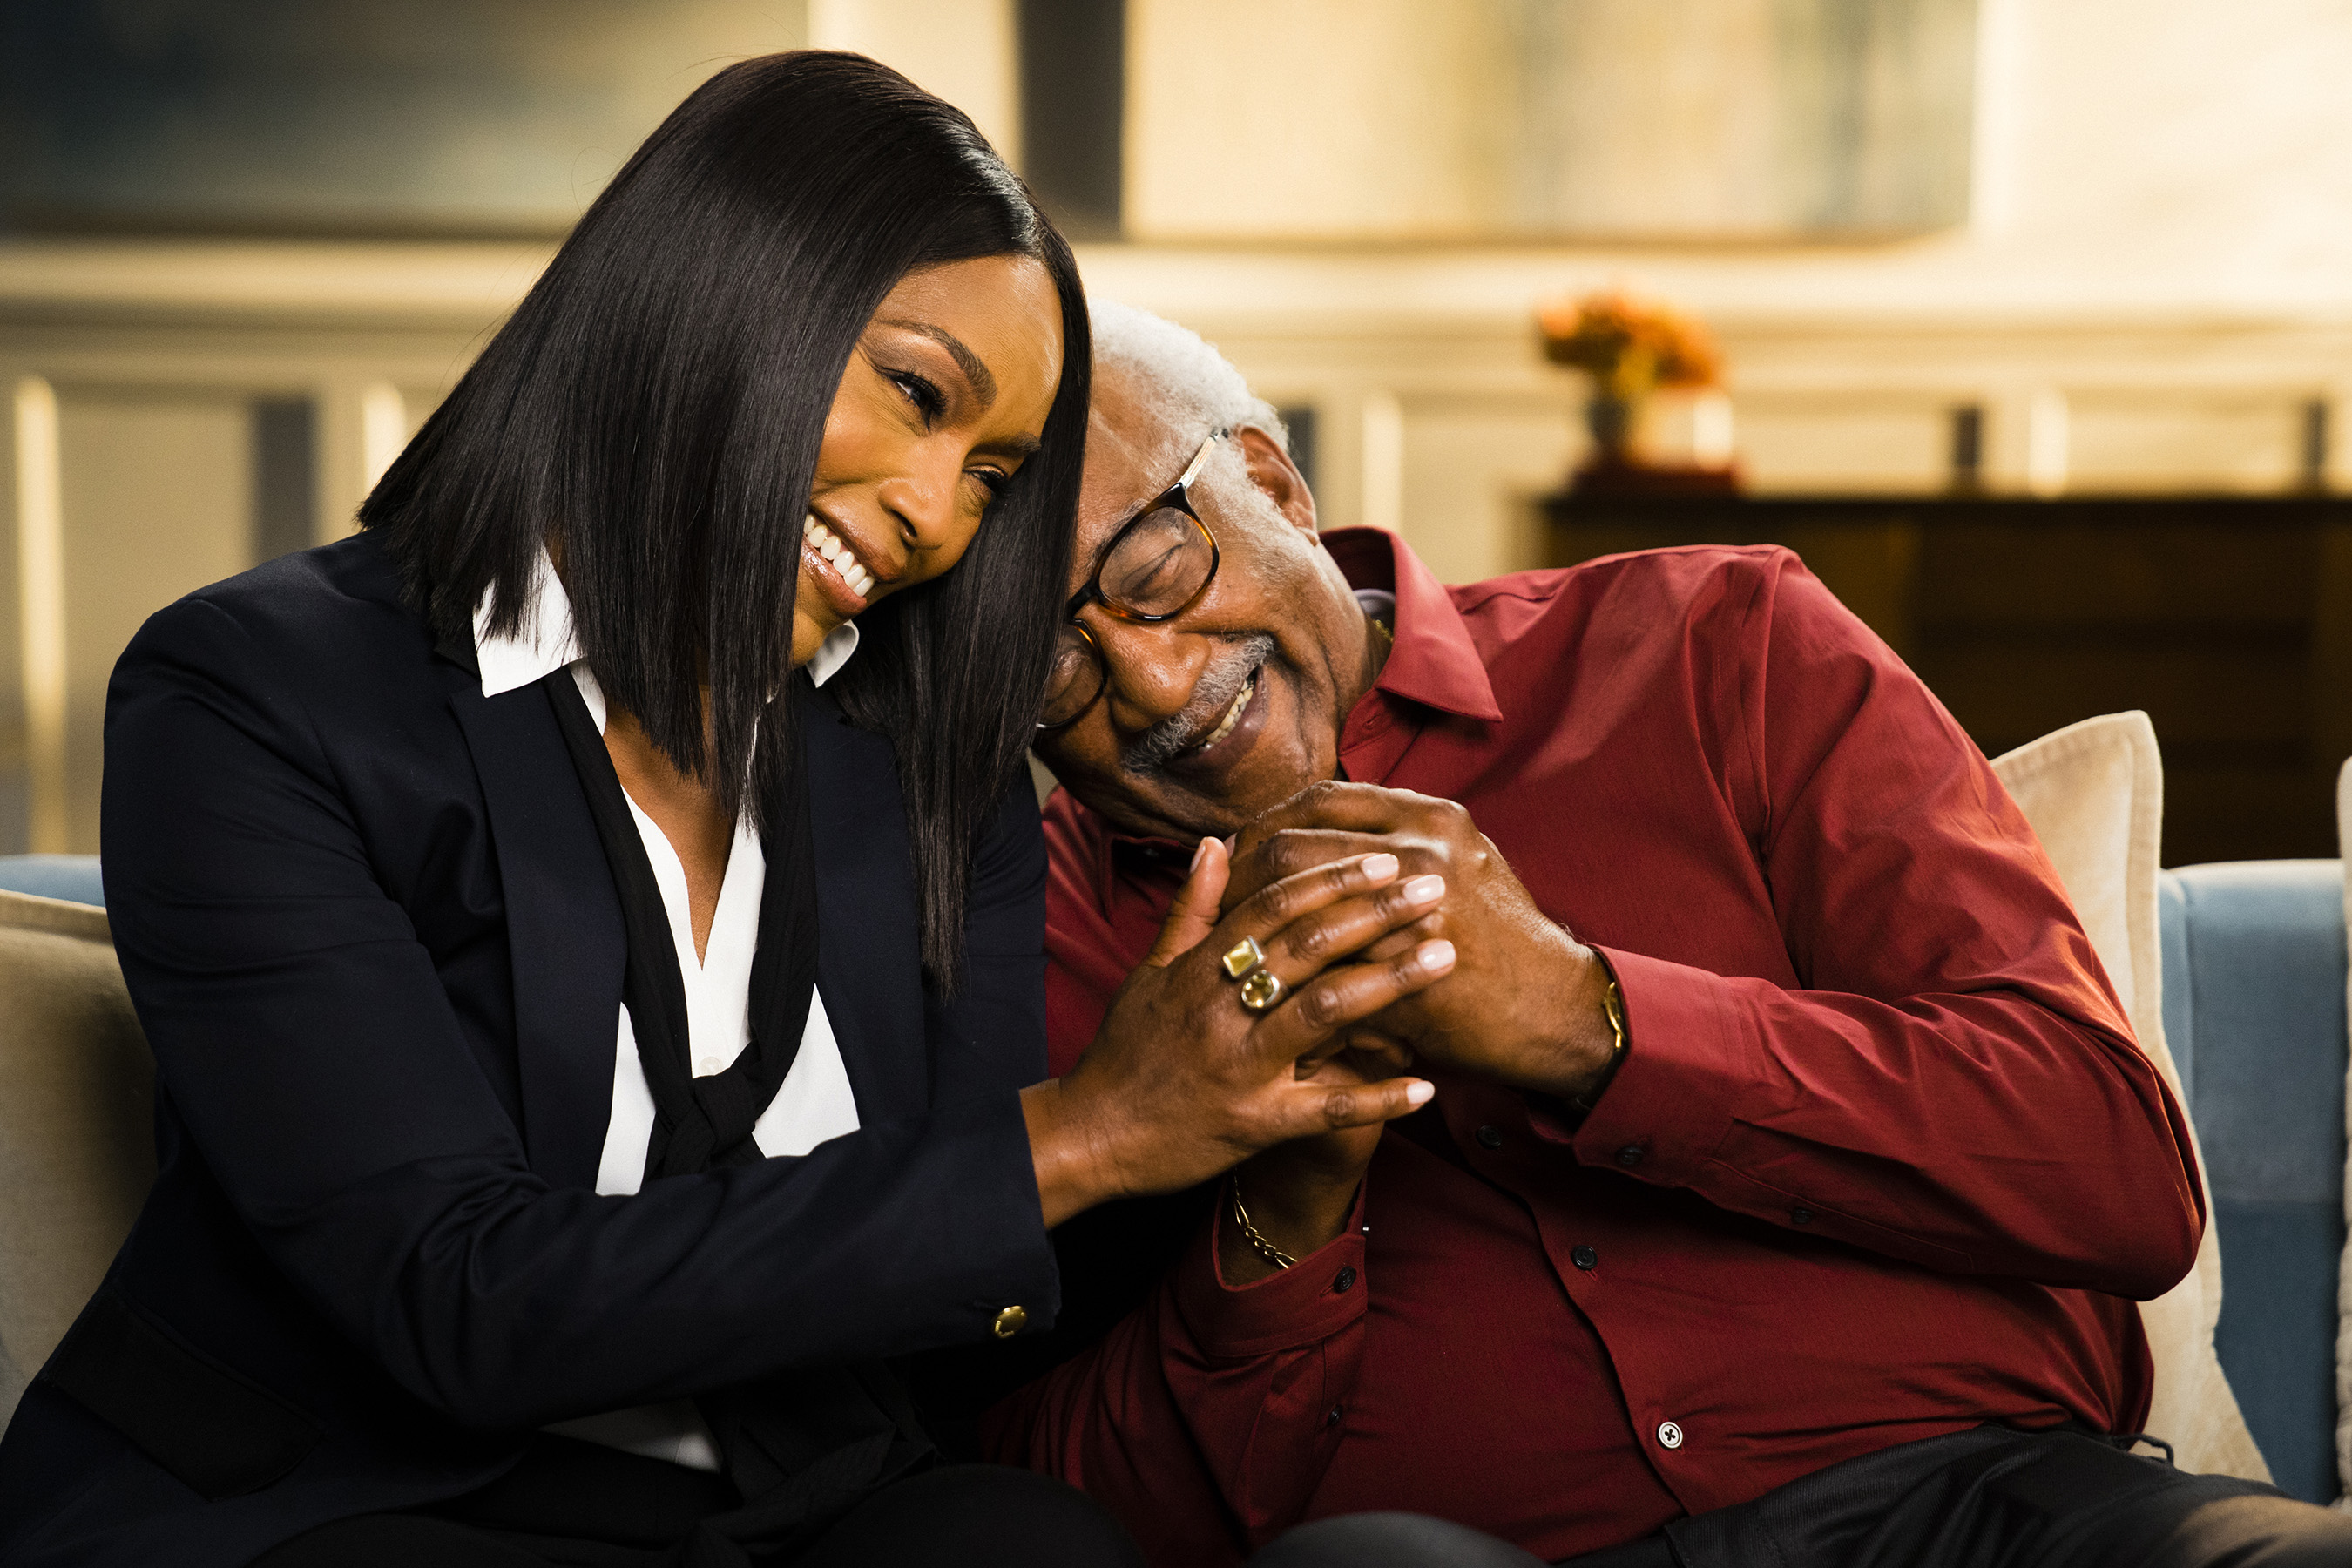 Angela Bassett, whose mom had type 2 diabetes and died of heart disease, and her uncle, Ralph, share their personal connection with both conditions and urge others to know their heart disease risk.